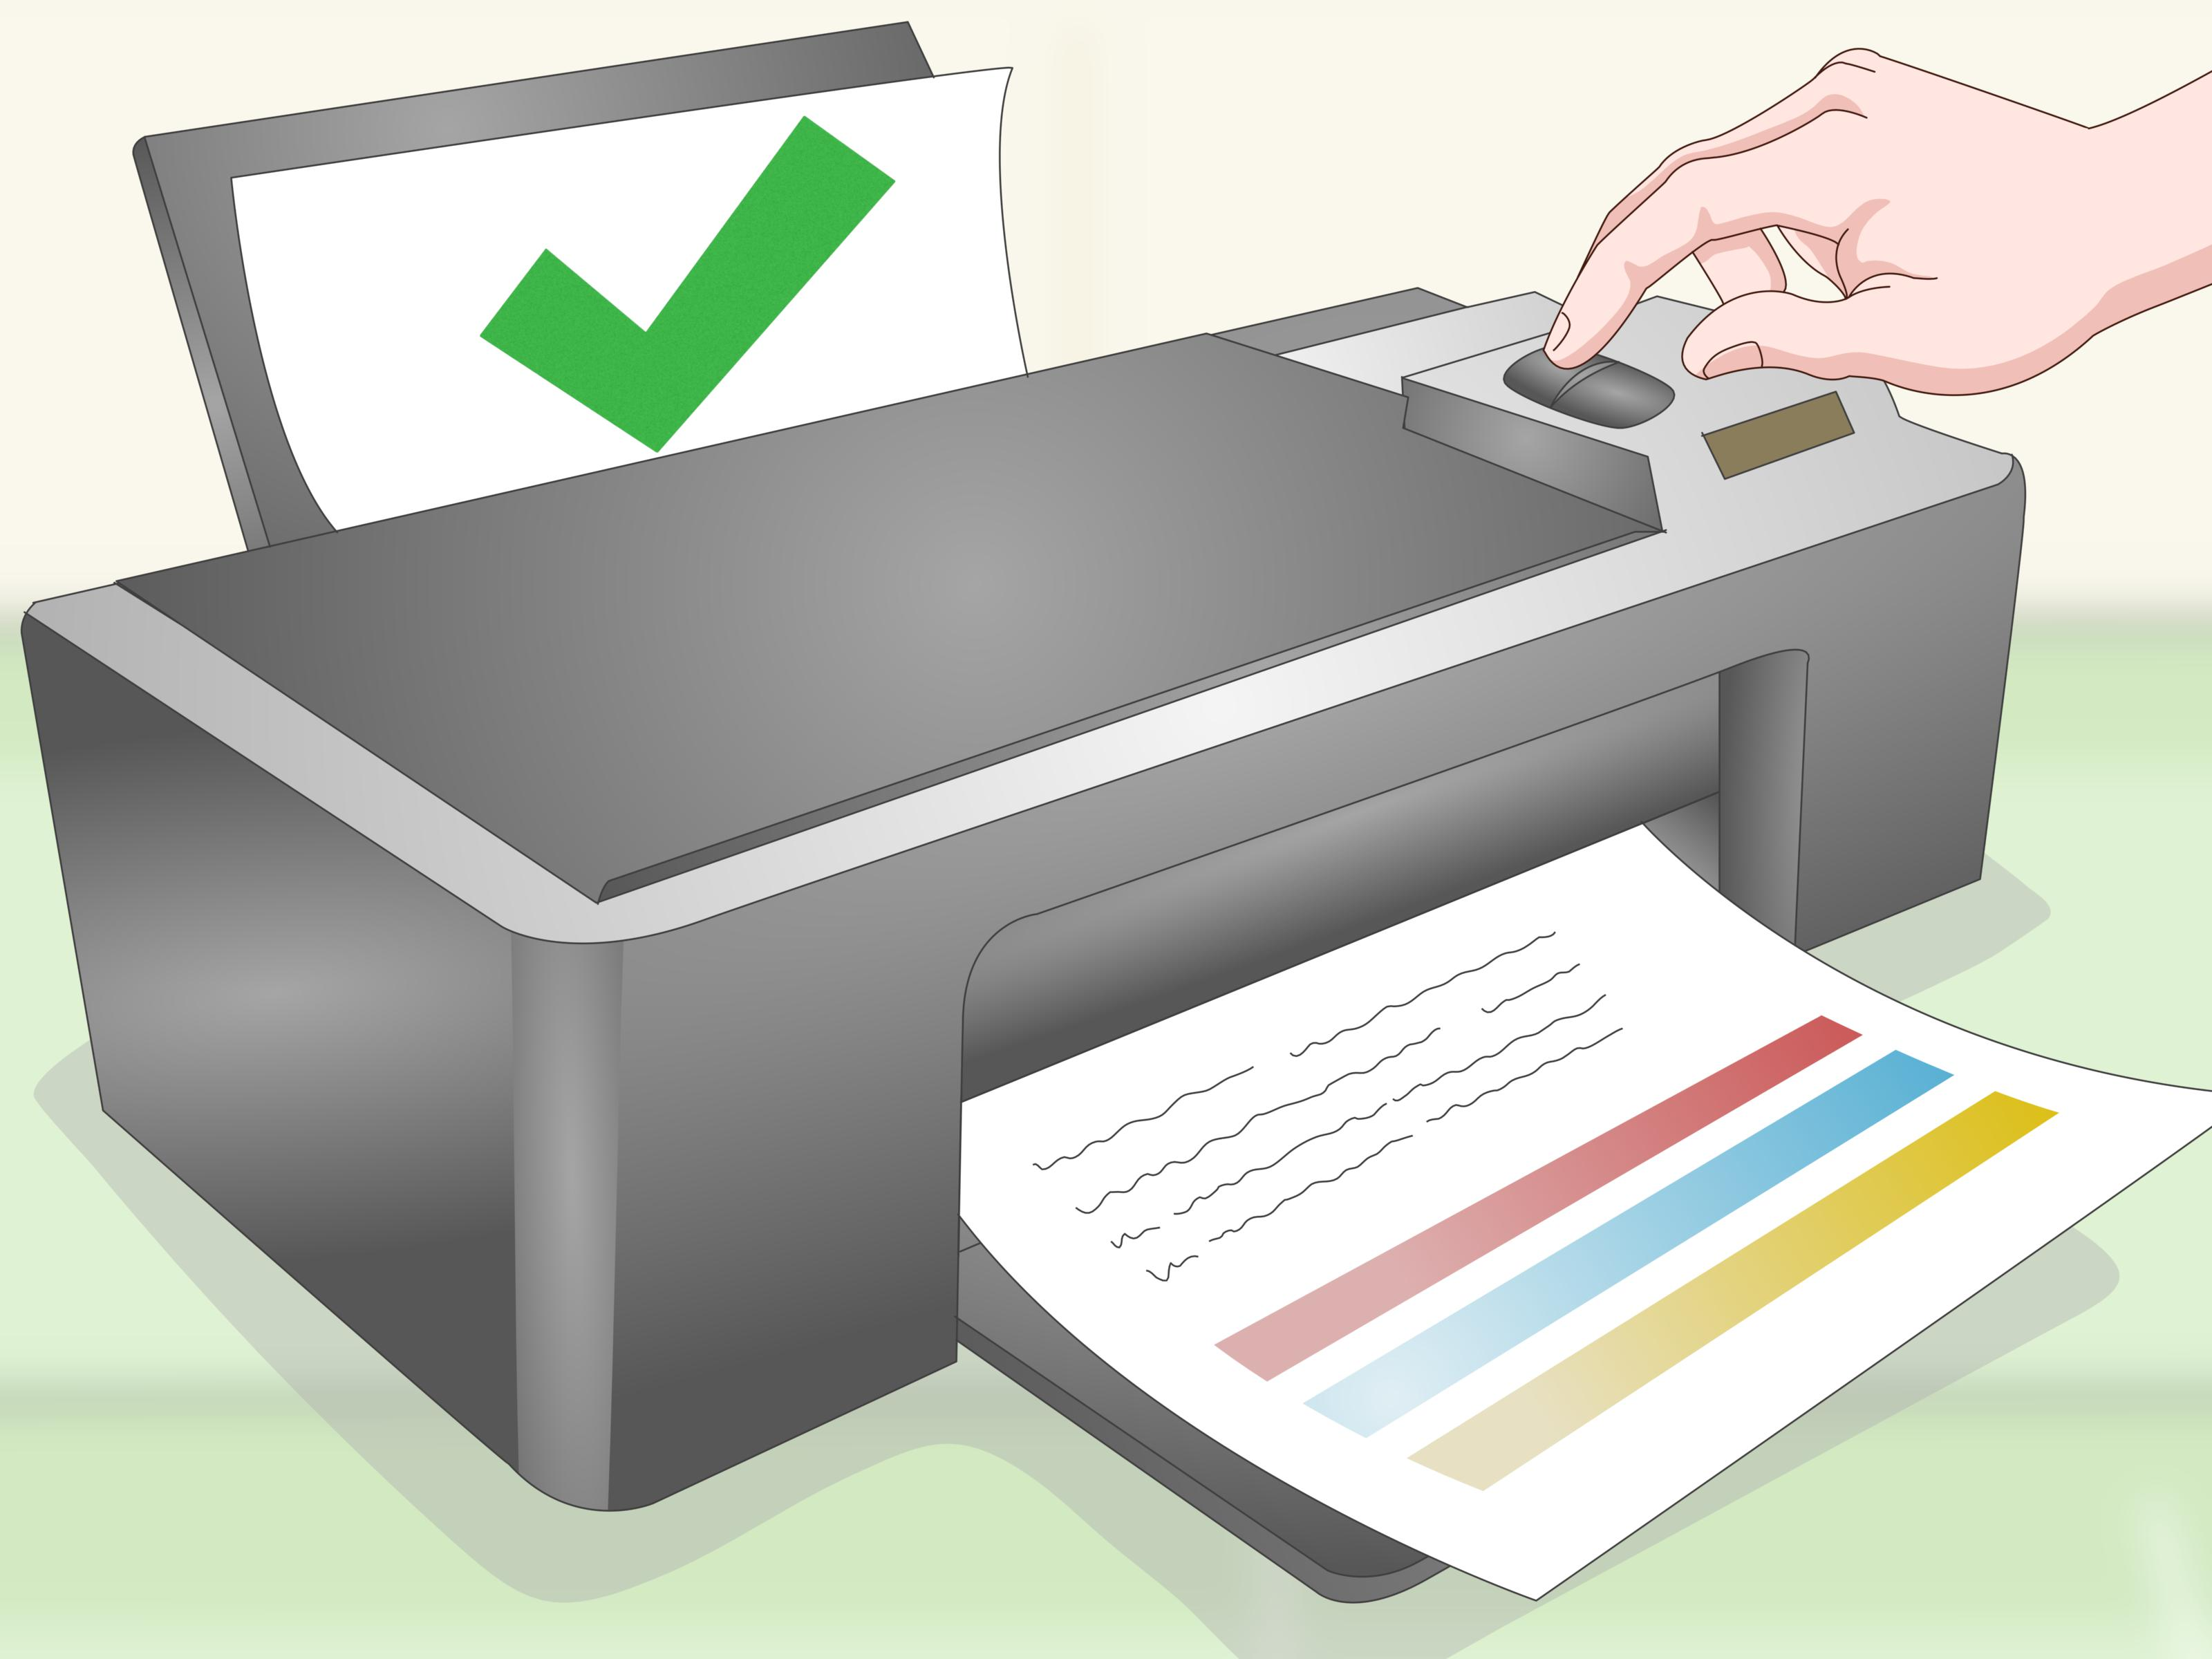 Gorgeous Ways To Clean Print Heads Wikihow Epson Nx430 Printer Printing Blank Pages Epson 410 Printer Printing Blank Pages dpreview Epson Printer Printing Blank Pages